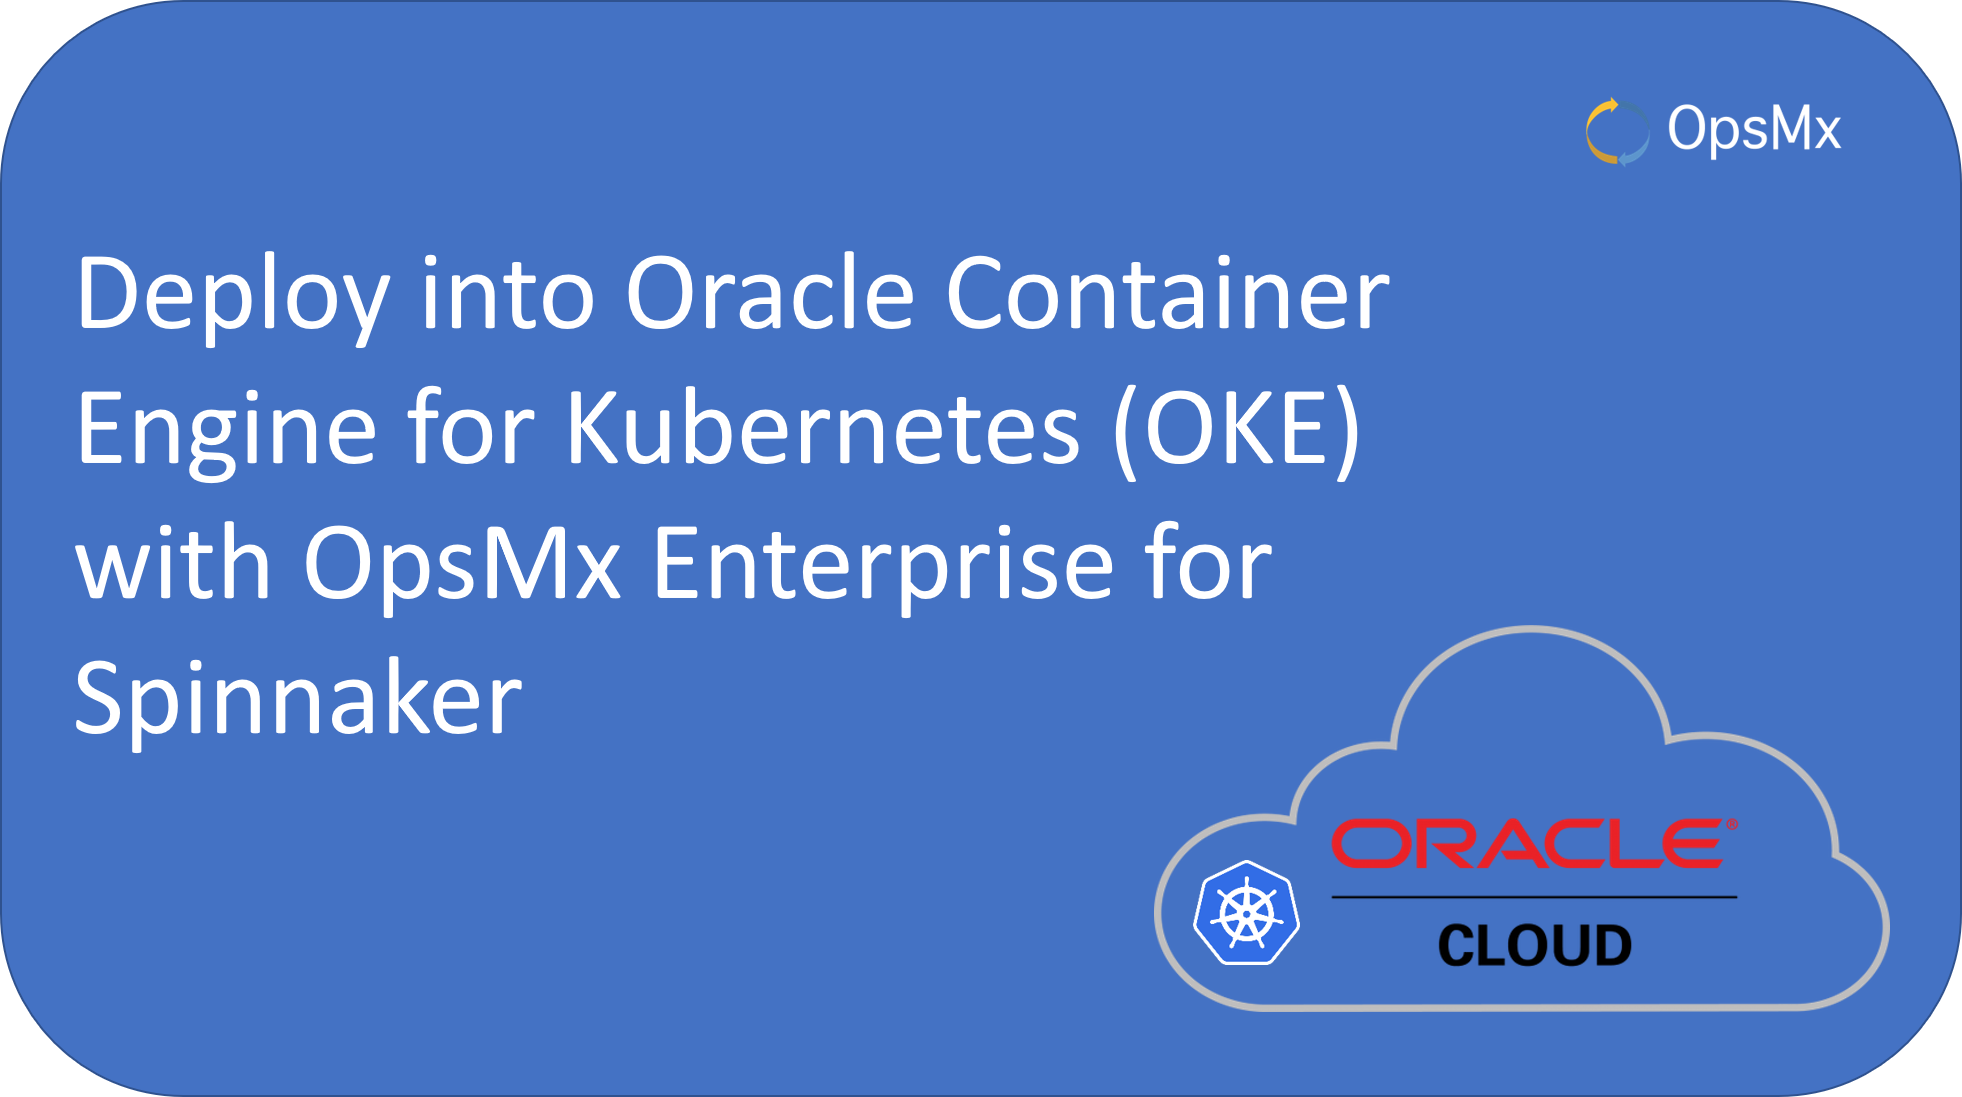 Deploy into Oracle Container Engine for Kubernetes (OKE) with OpsMx Enterprise for Spinnaker